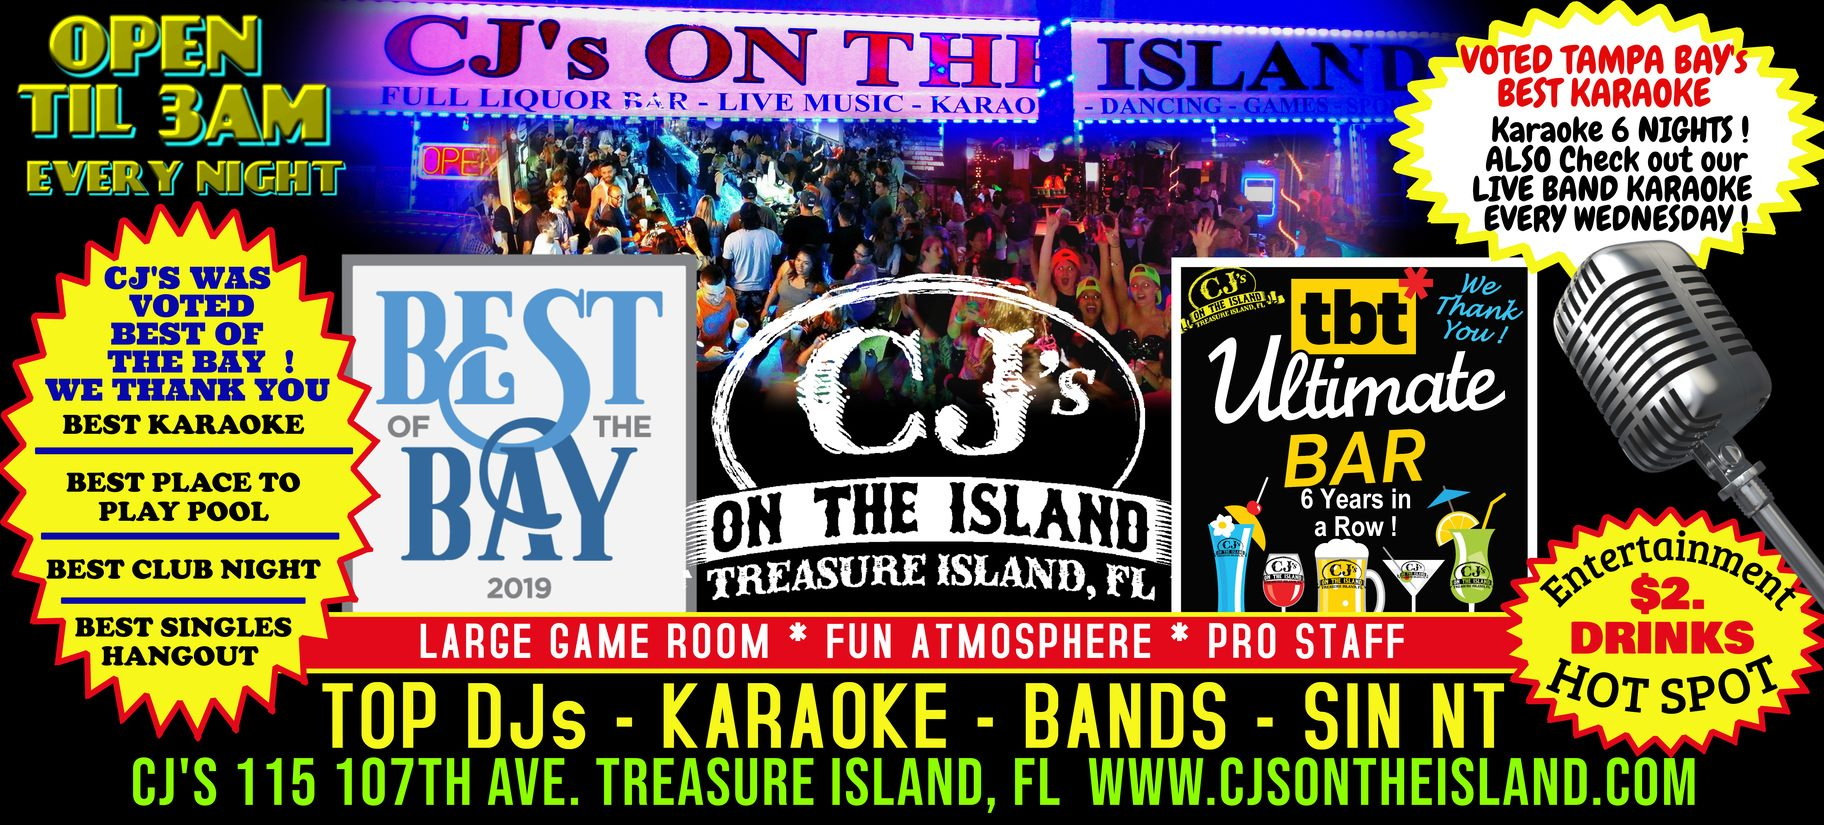 CJ's On The Island Treasure Island, FL